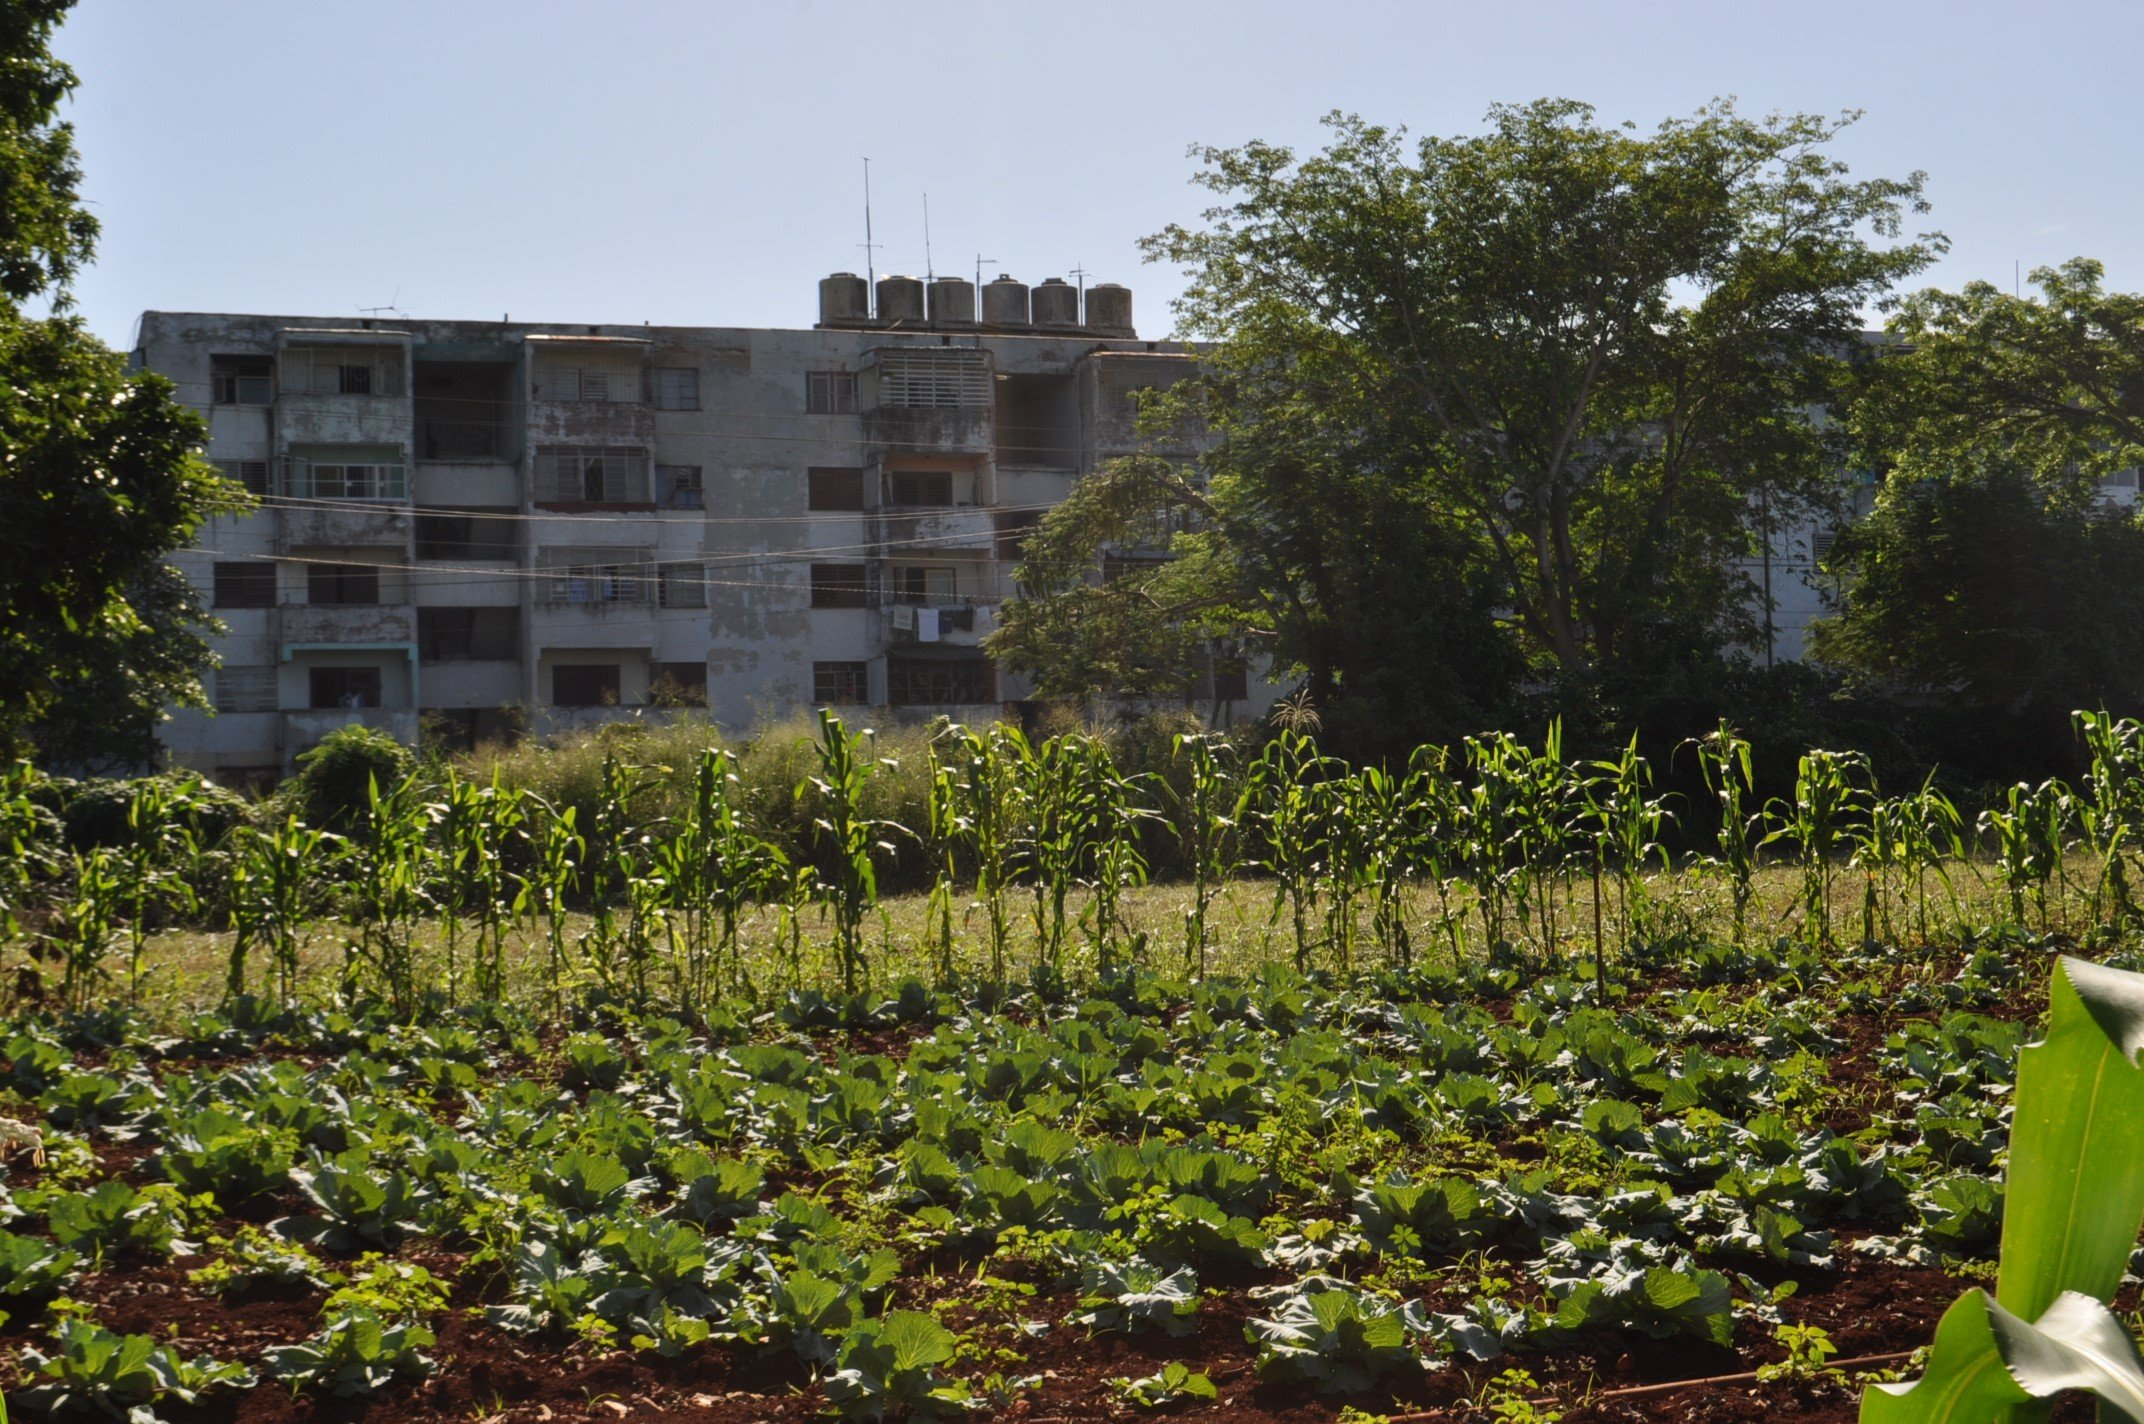 Urban design and agriculture in Cuba